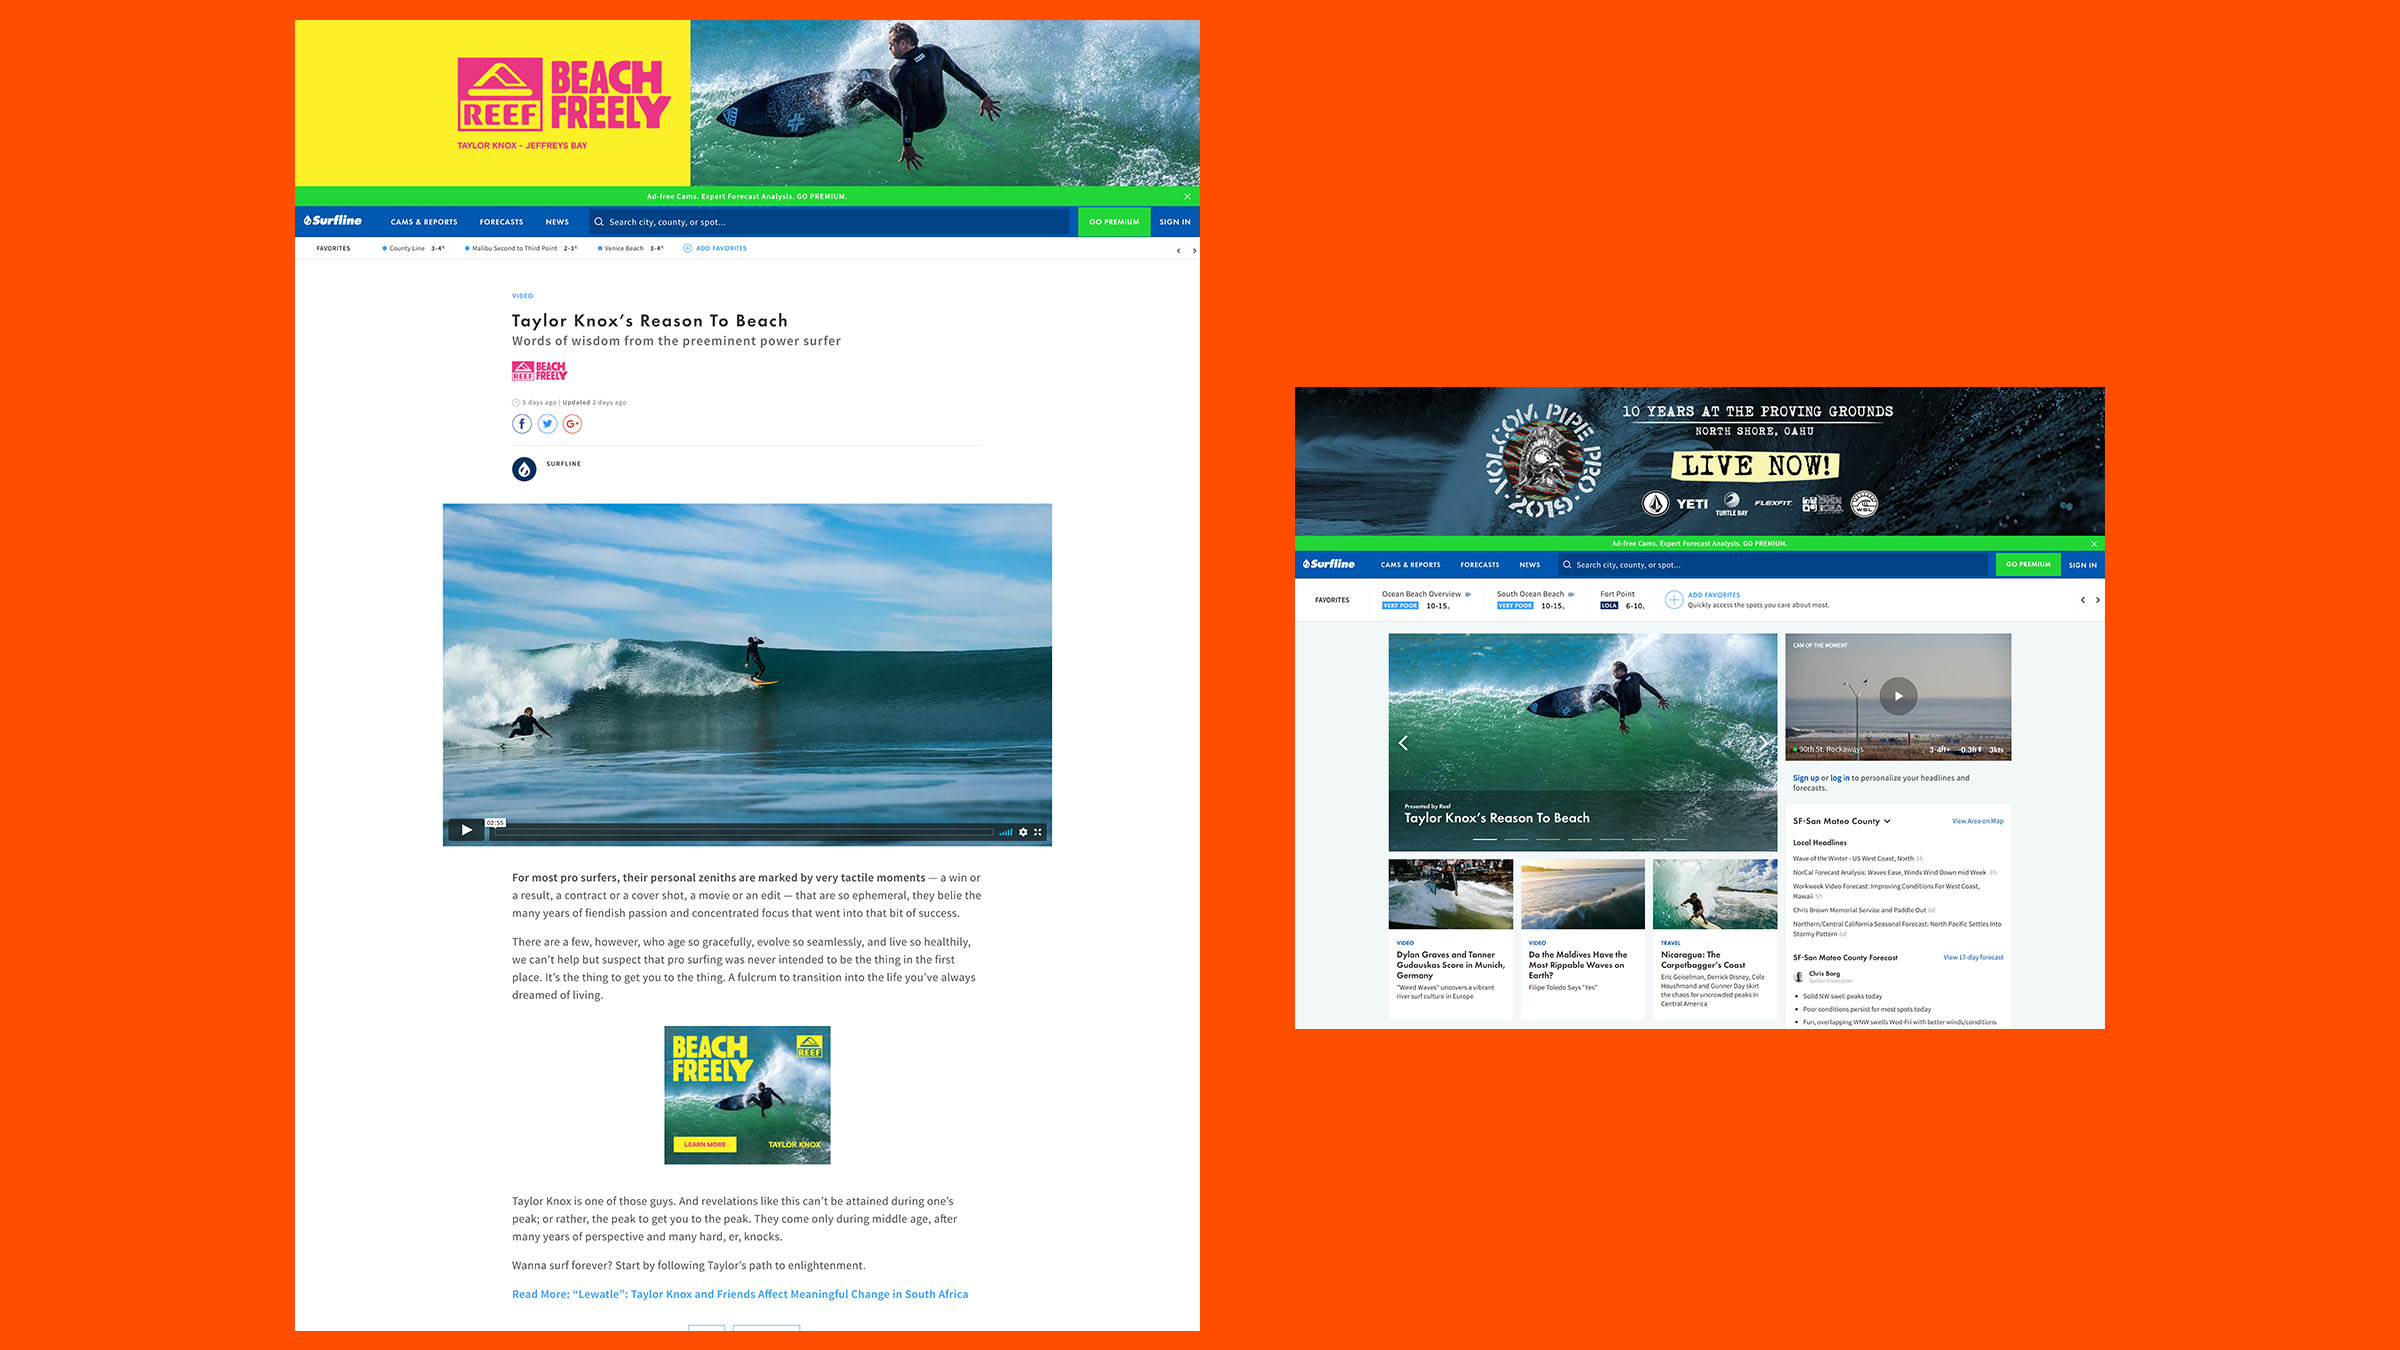 Reef partnered with Surfline to promote Taylor's Reason To Beach. The video headlined the homepage and an article accompanied the full edit.